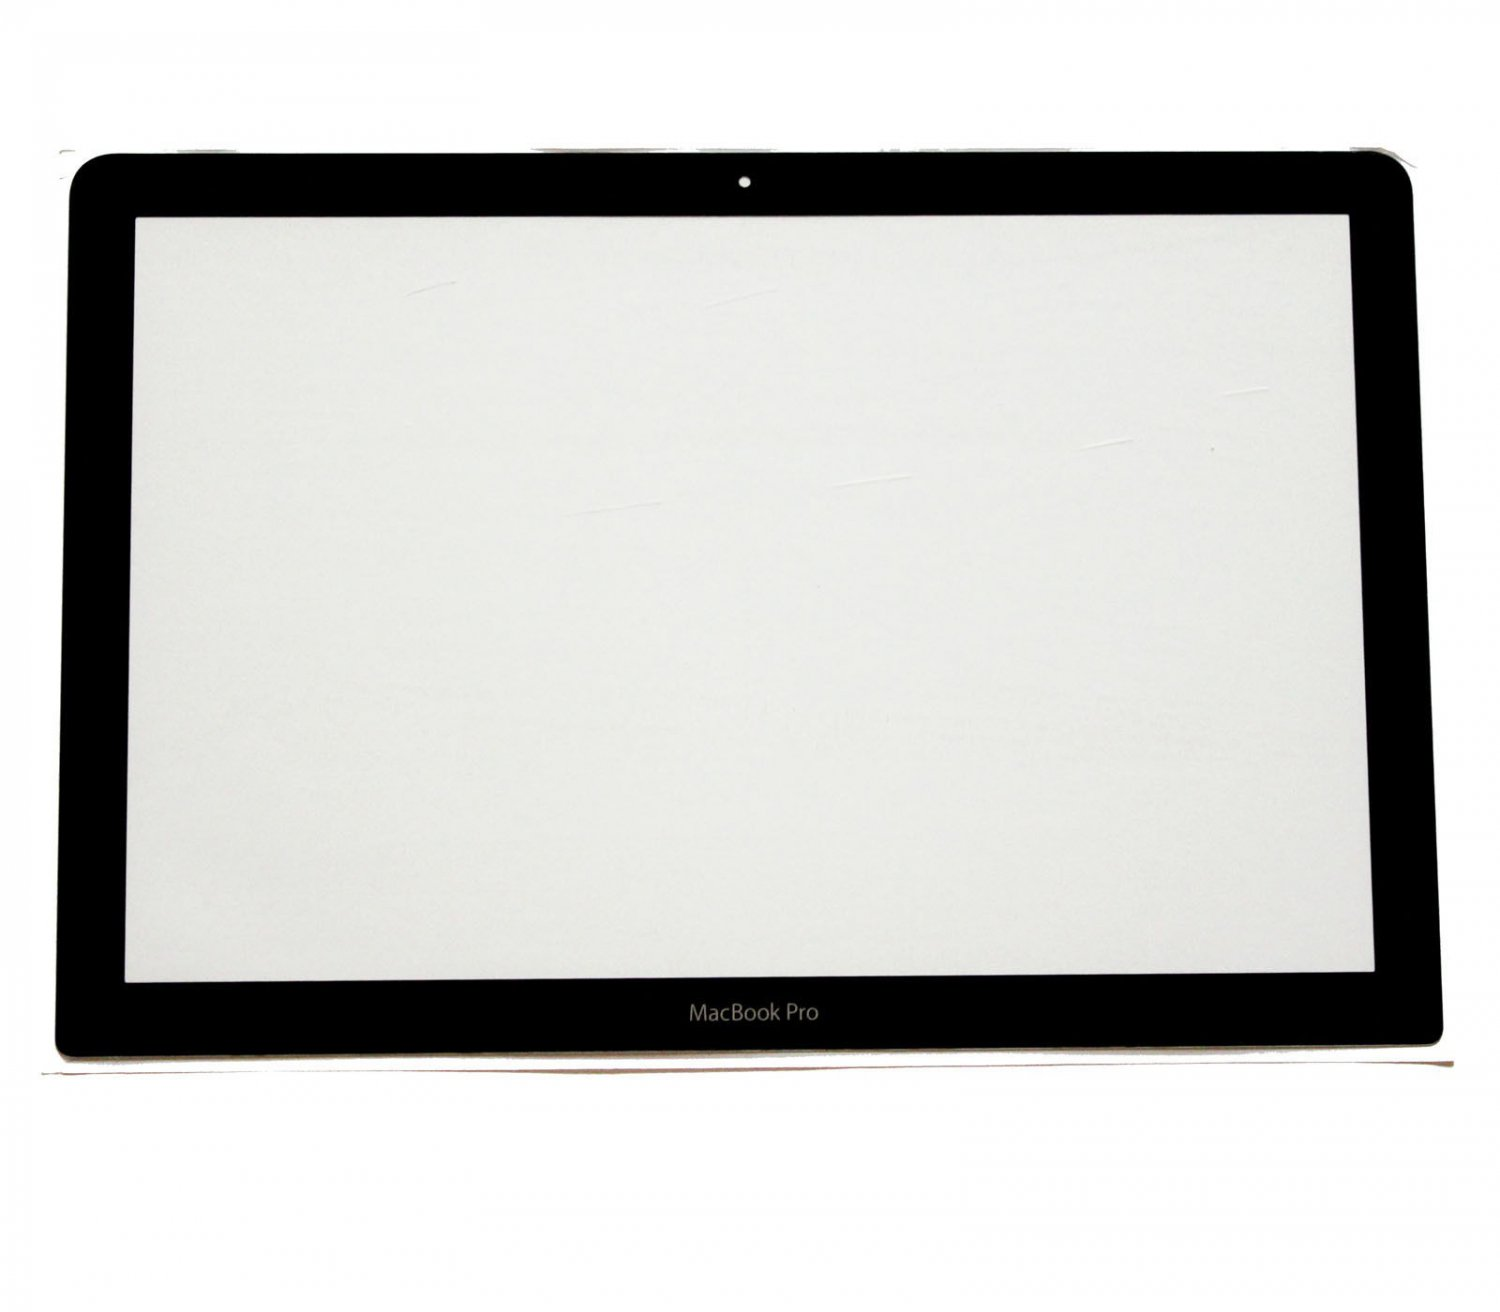 New 13.3 LCD Glass Screen For Macbook Pro A1278 MC700 MB990 MB466